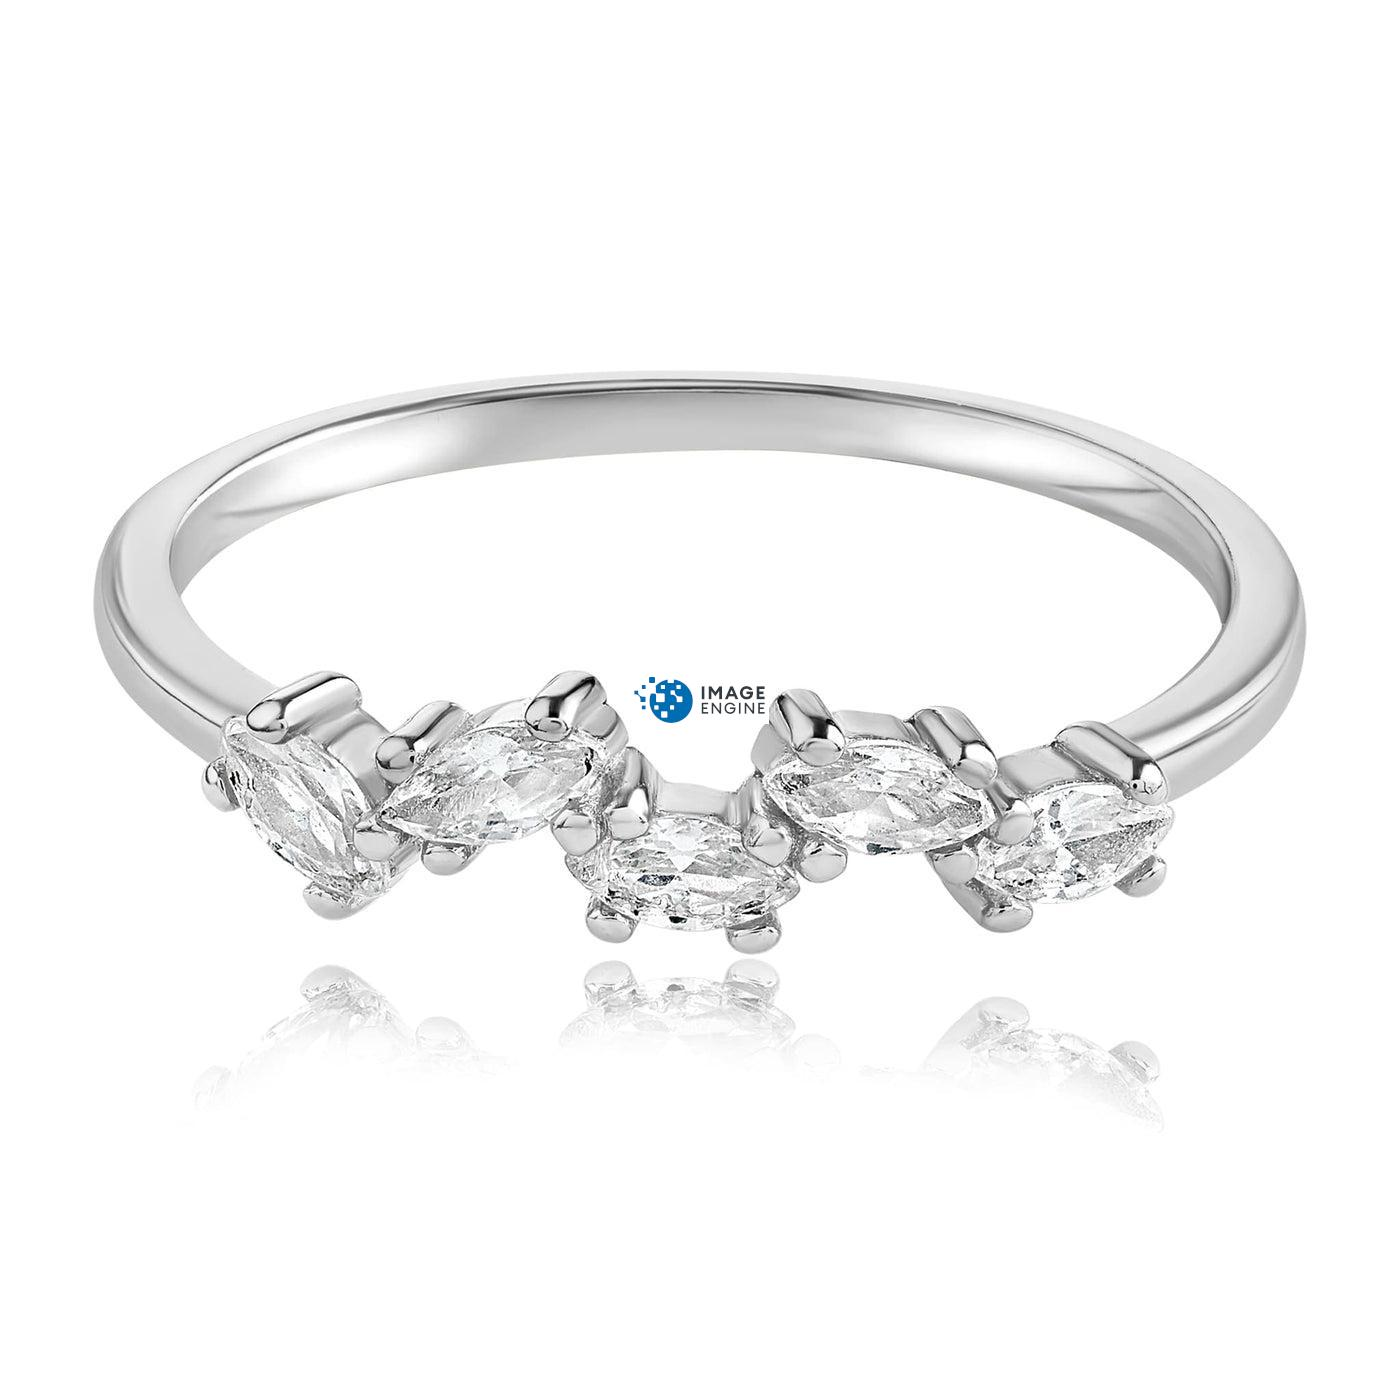 Genna Round Cut Ring - Front View Facing Down - 925 Sterling Silver